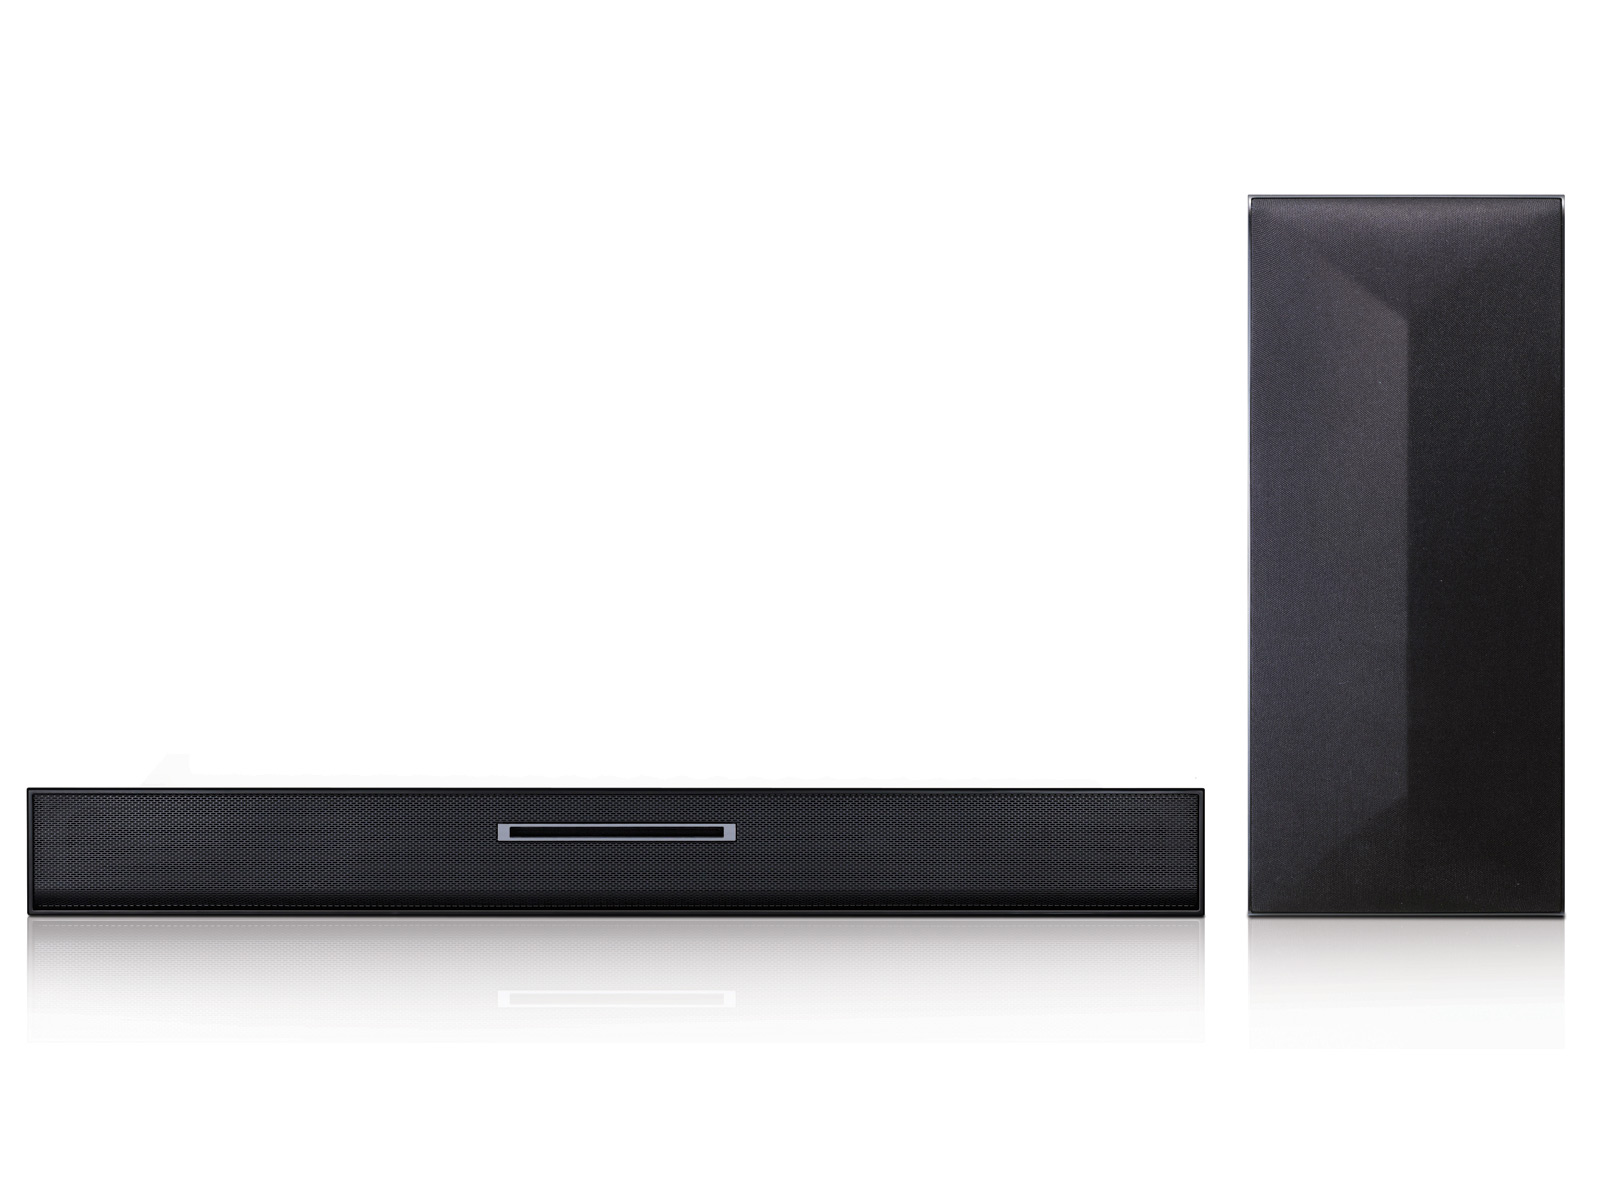 LG LAB550W 2.1 Channel SoundPlate with LG Smart and BluRay Playback